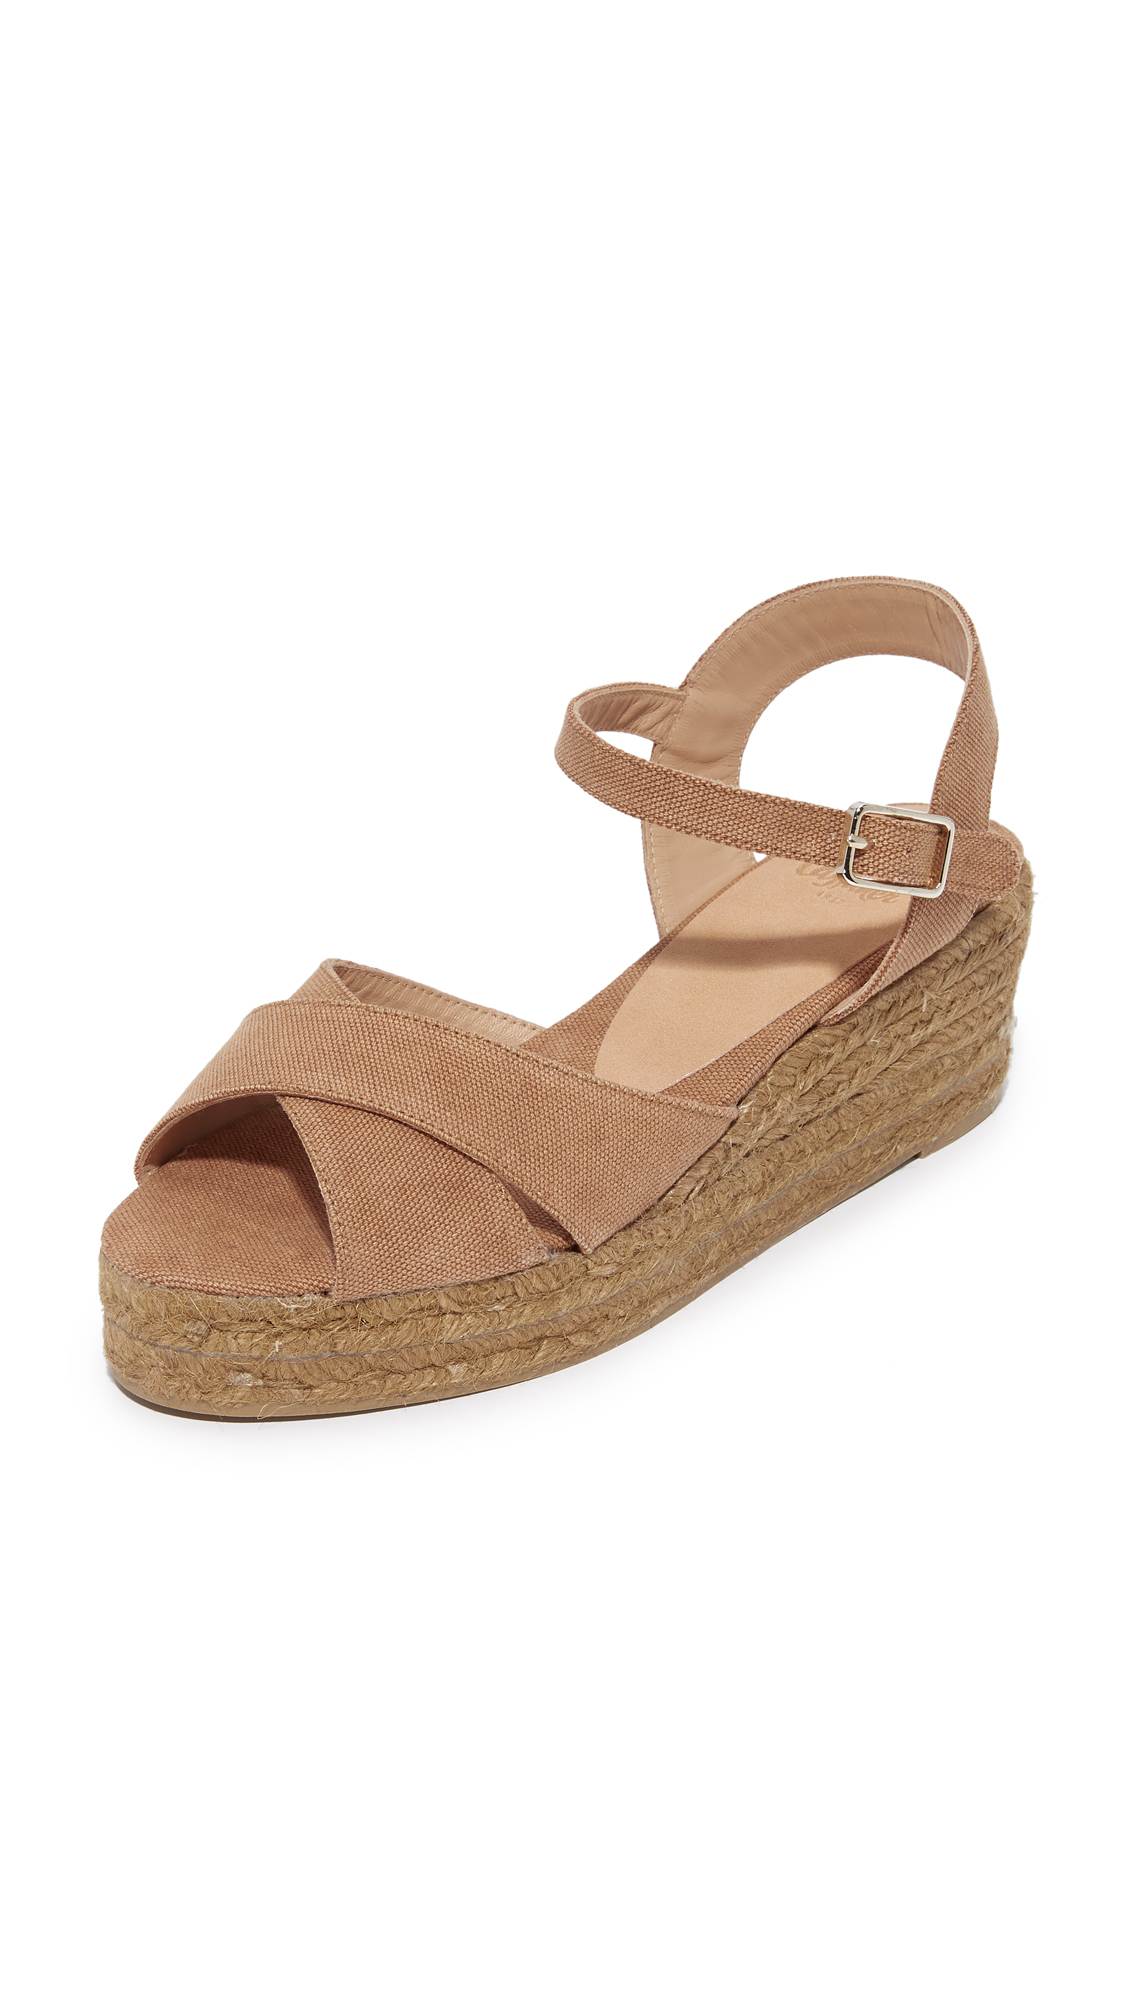 Castaner Washed Canvas Crisscross Wedge Espadrilles - Tostado